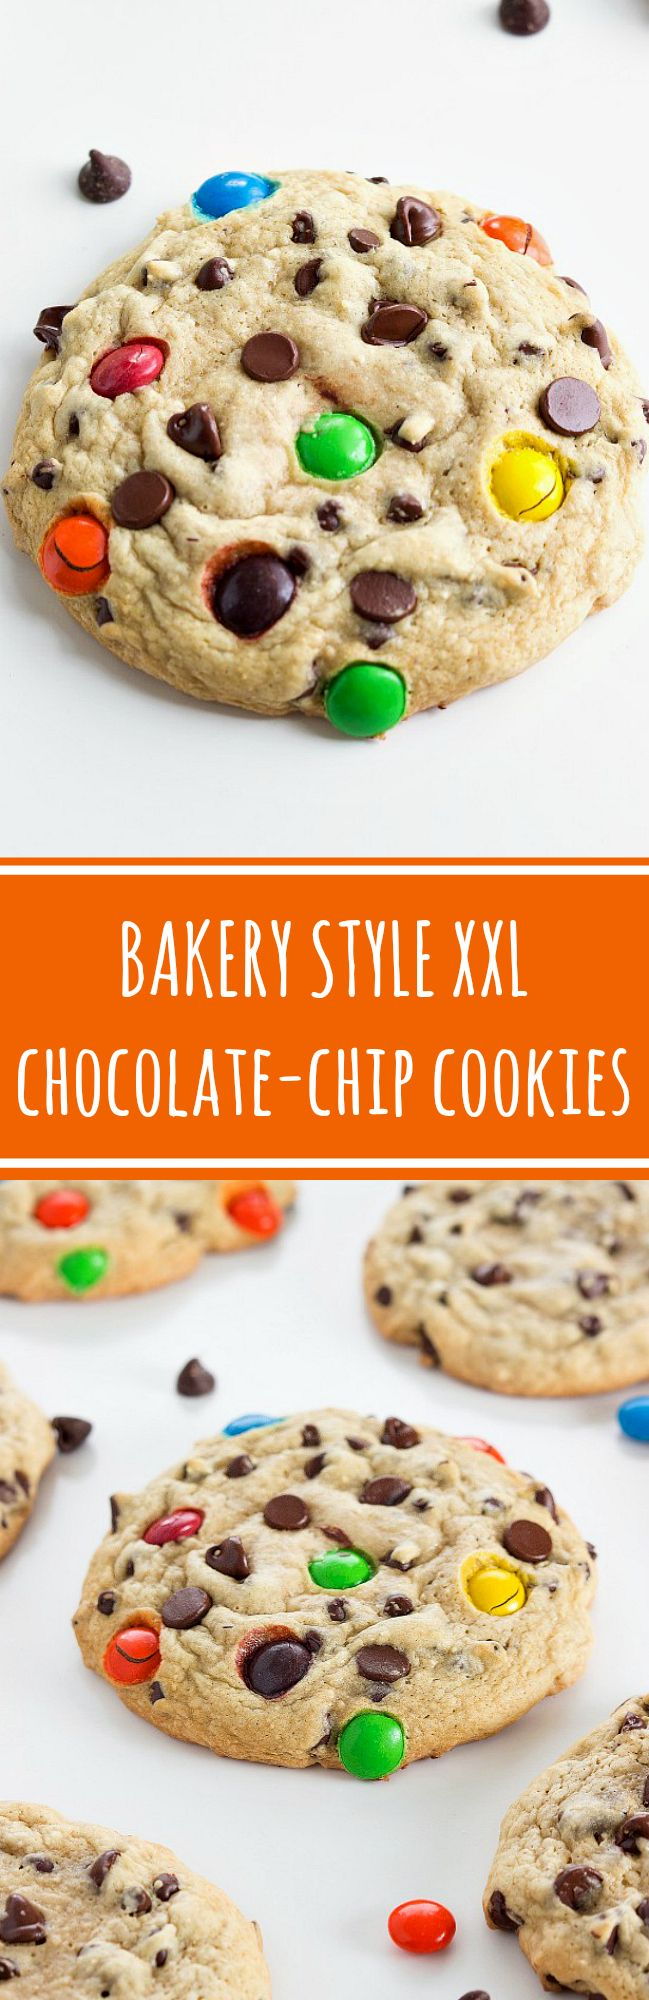 {Secret Ingredient} Bakery-Style Chocolate Chip Cookies - the secret is oat flour and cream of tartar.